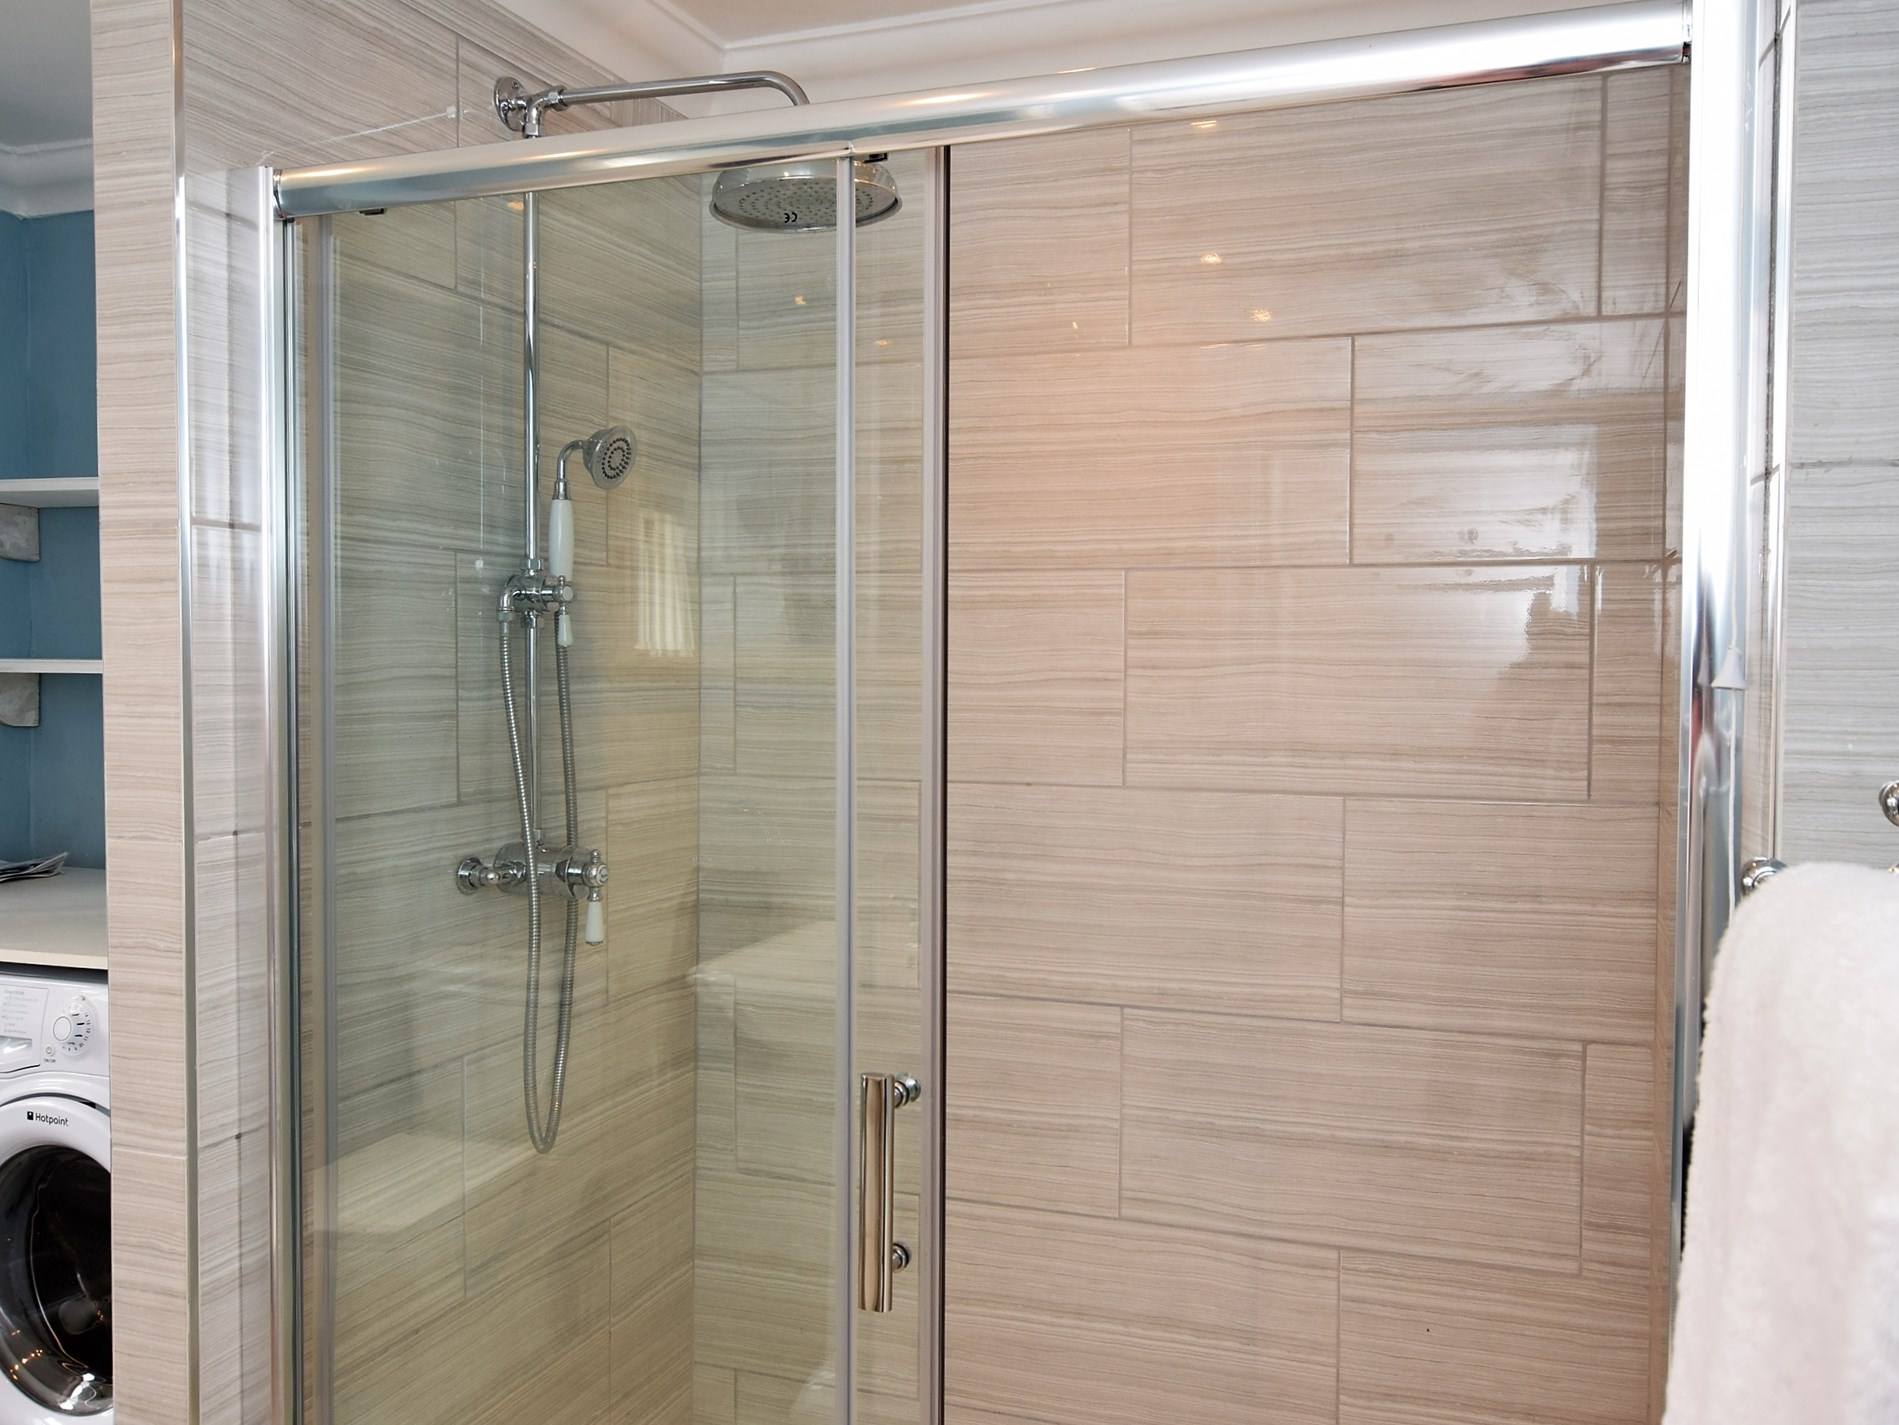 The cottage offers a large walk-in shower